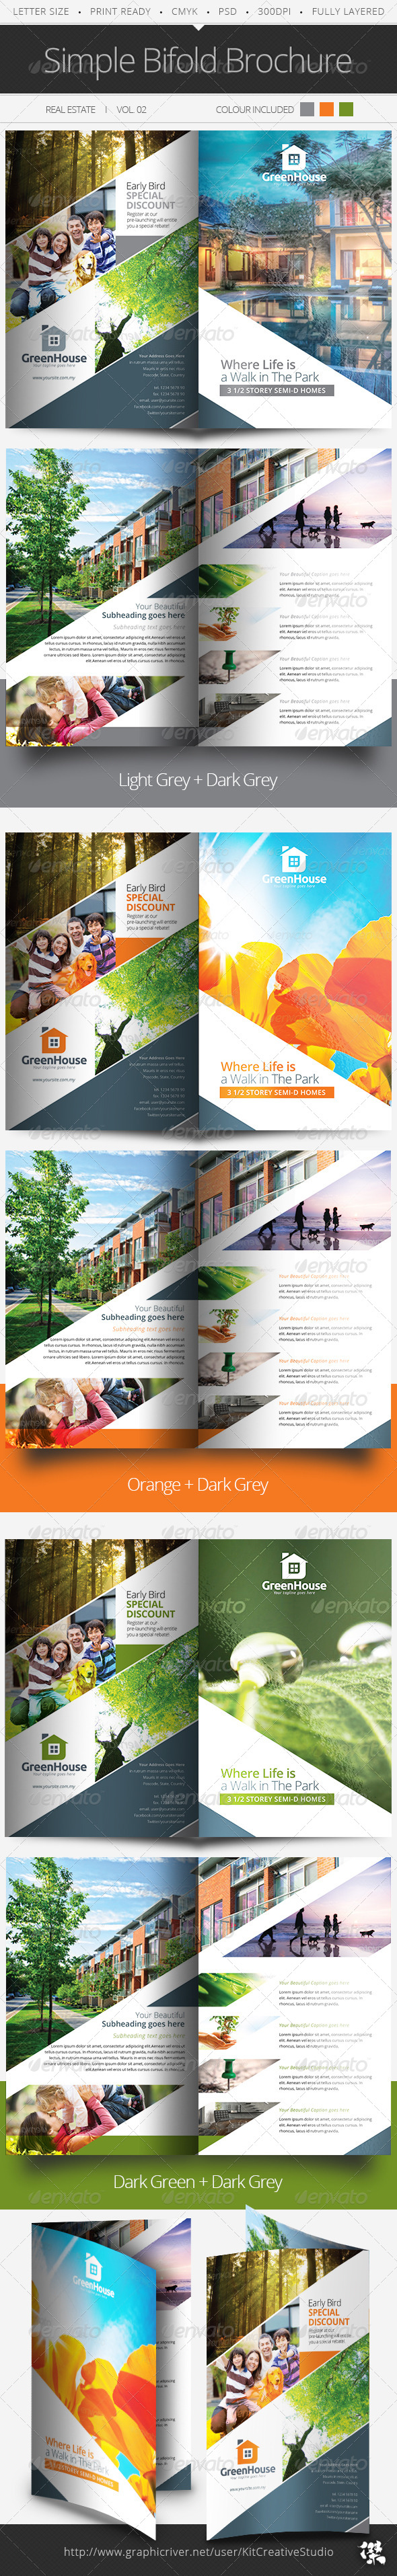 GraphicRiver Simple Bifold Brochure Vol.02 5896086